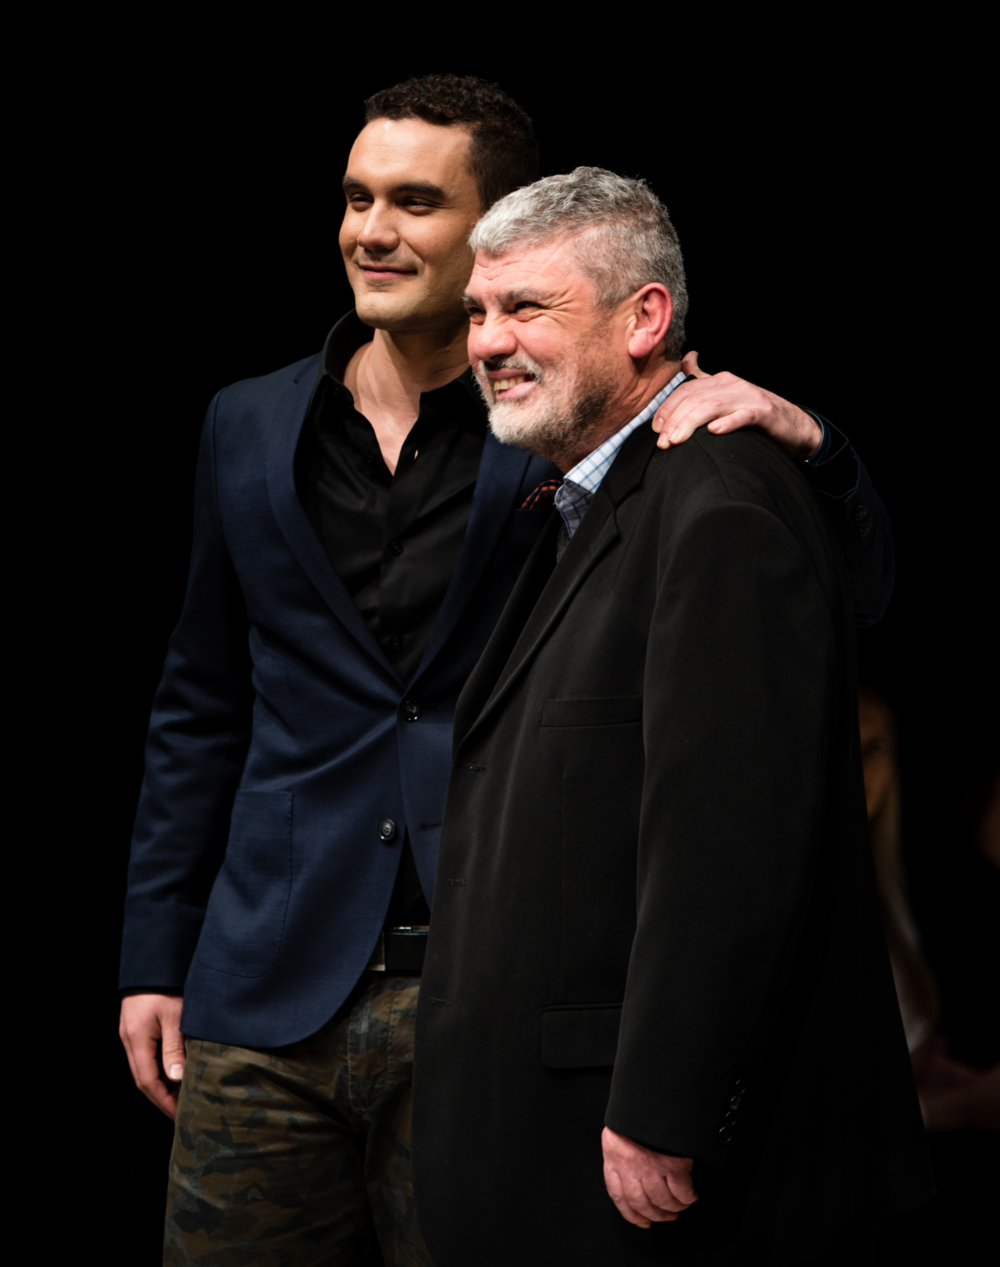 Rodrigo Sanchez with his Father Julio Sanchez at Western Canada Fashion Week.